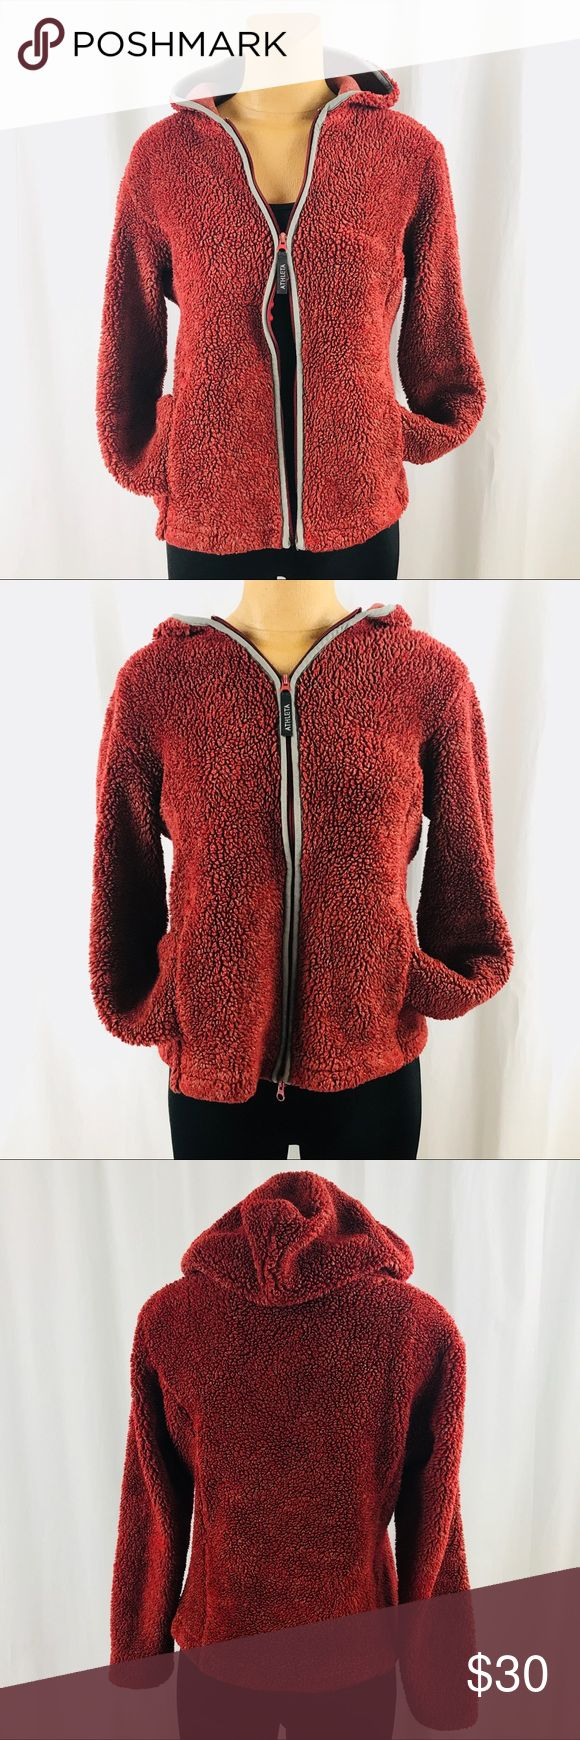 Athleta Fuzzy Bear Jacket Condition-Great  -Some paint chipped on zipper pull -2 way zipper pull -2 pockets and hood Made in the USA Athleta Jackets & Coats